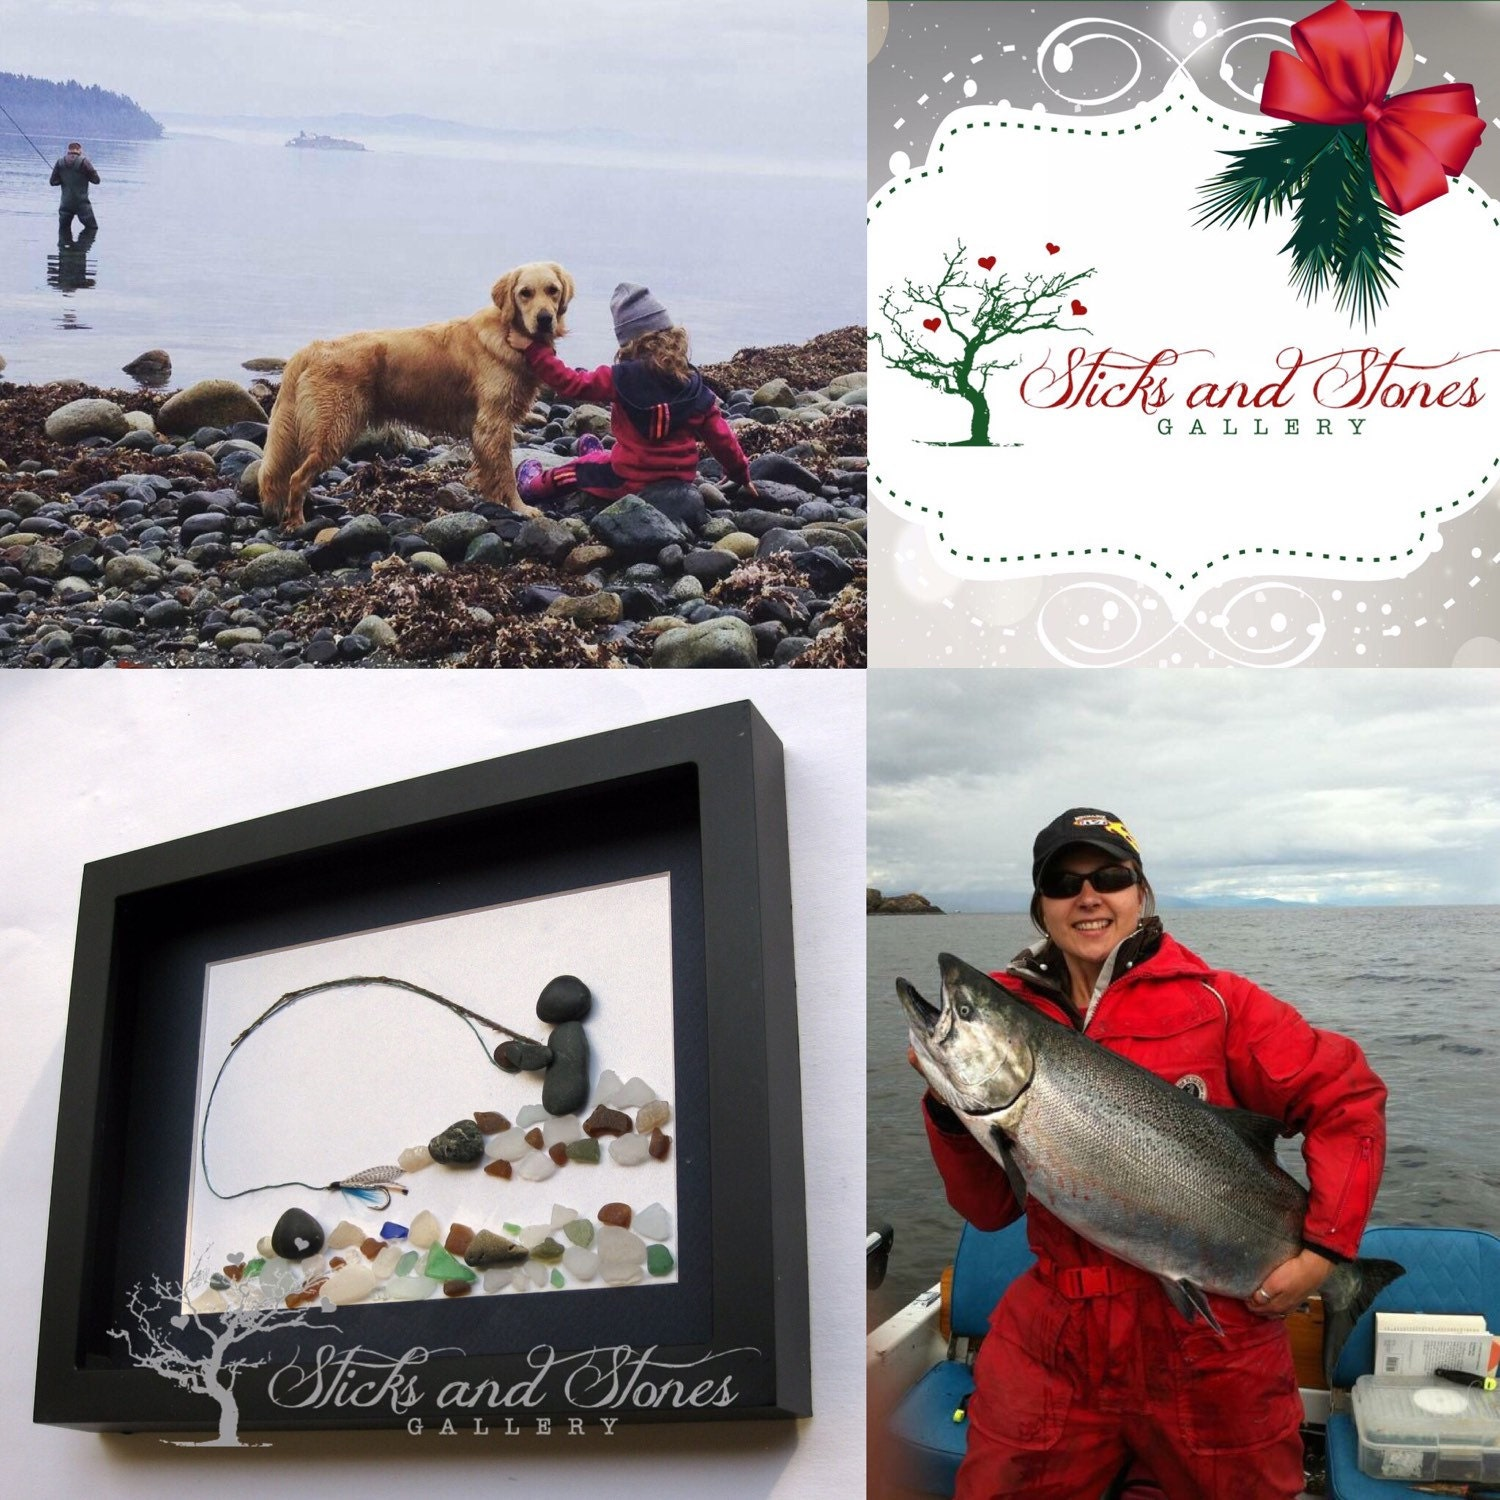 Christmas gifts for him fly fishing pebble art personalized for Fishing gifts for him